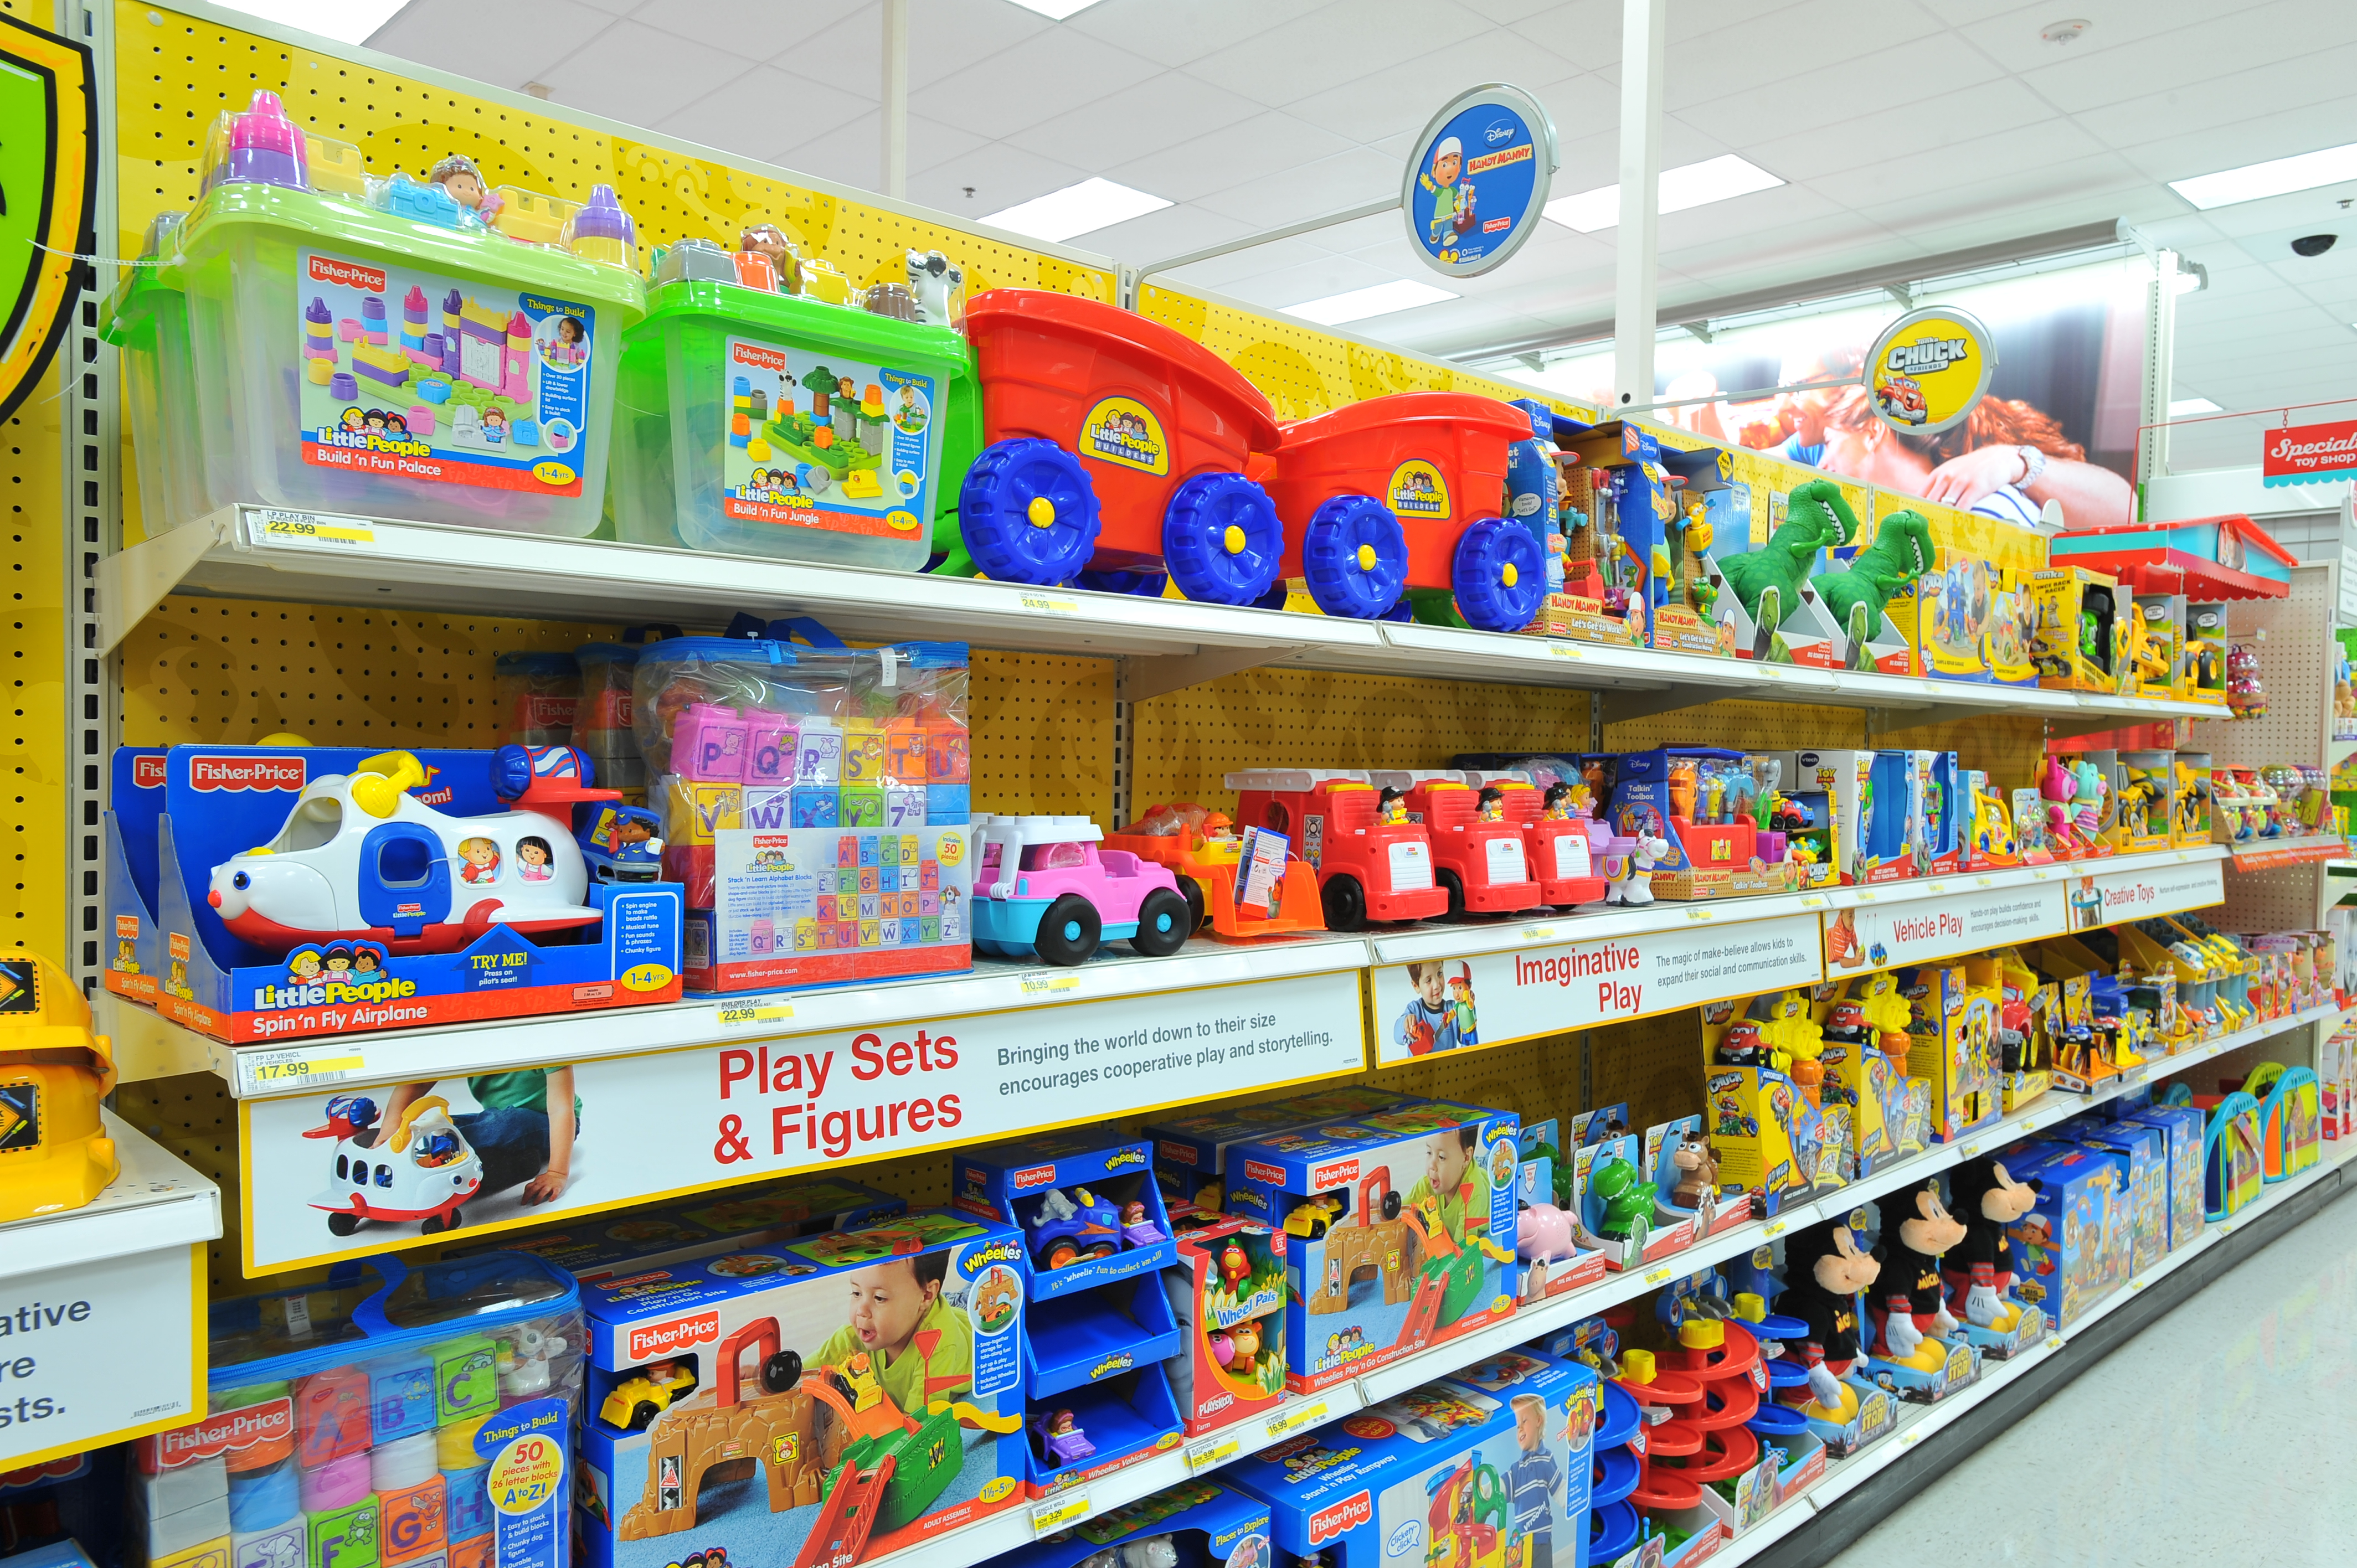 Toys From Target : From factory to shelf an inside look at target s holiday toy